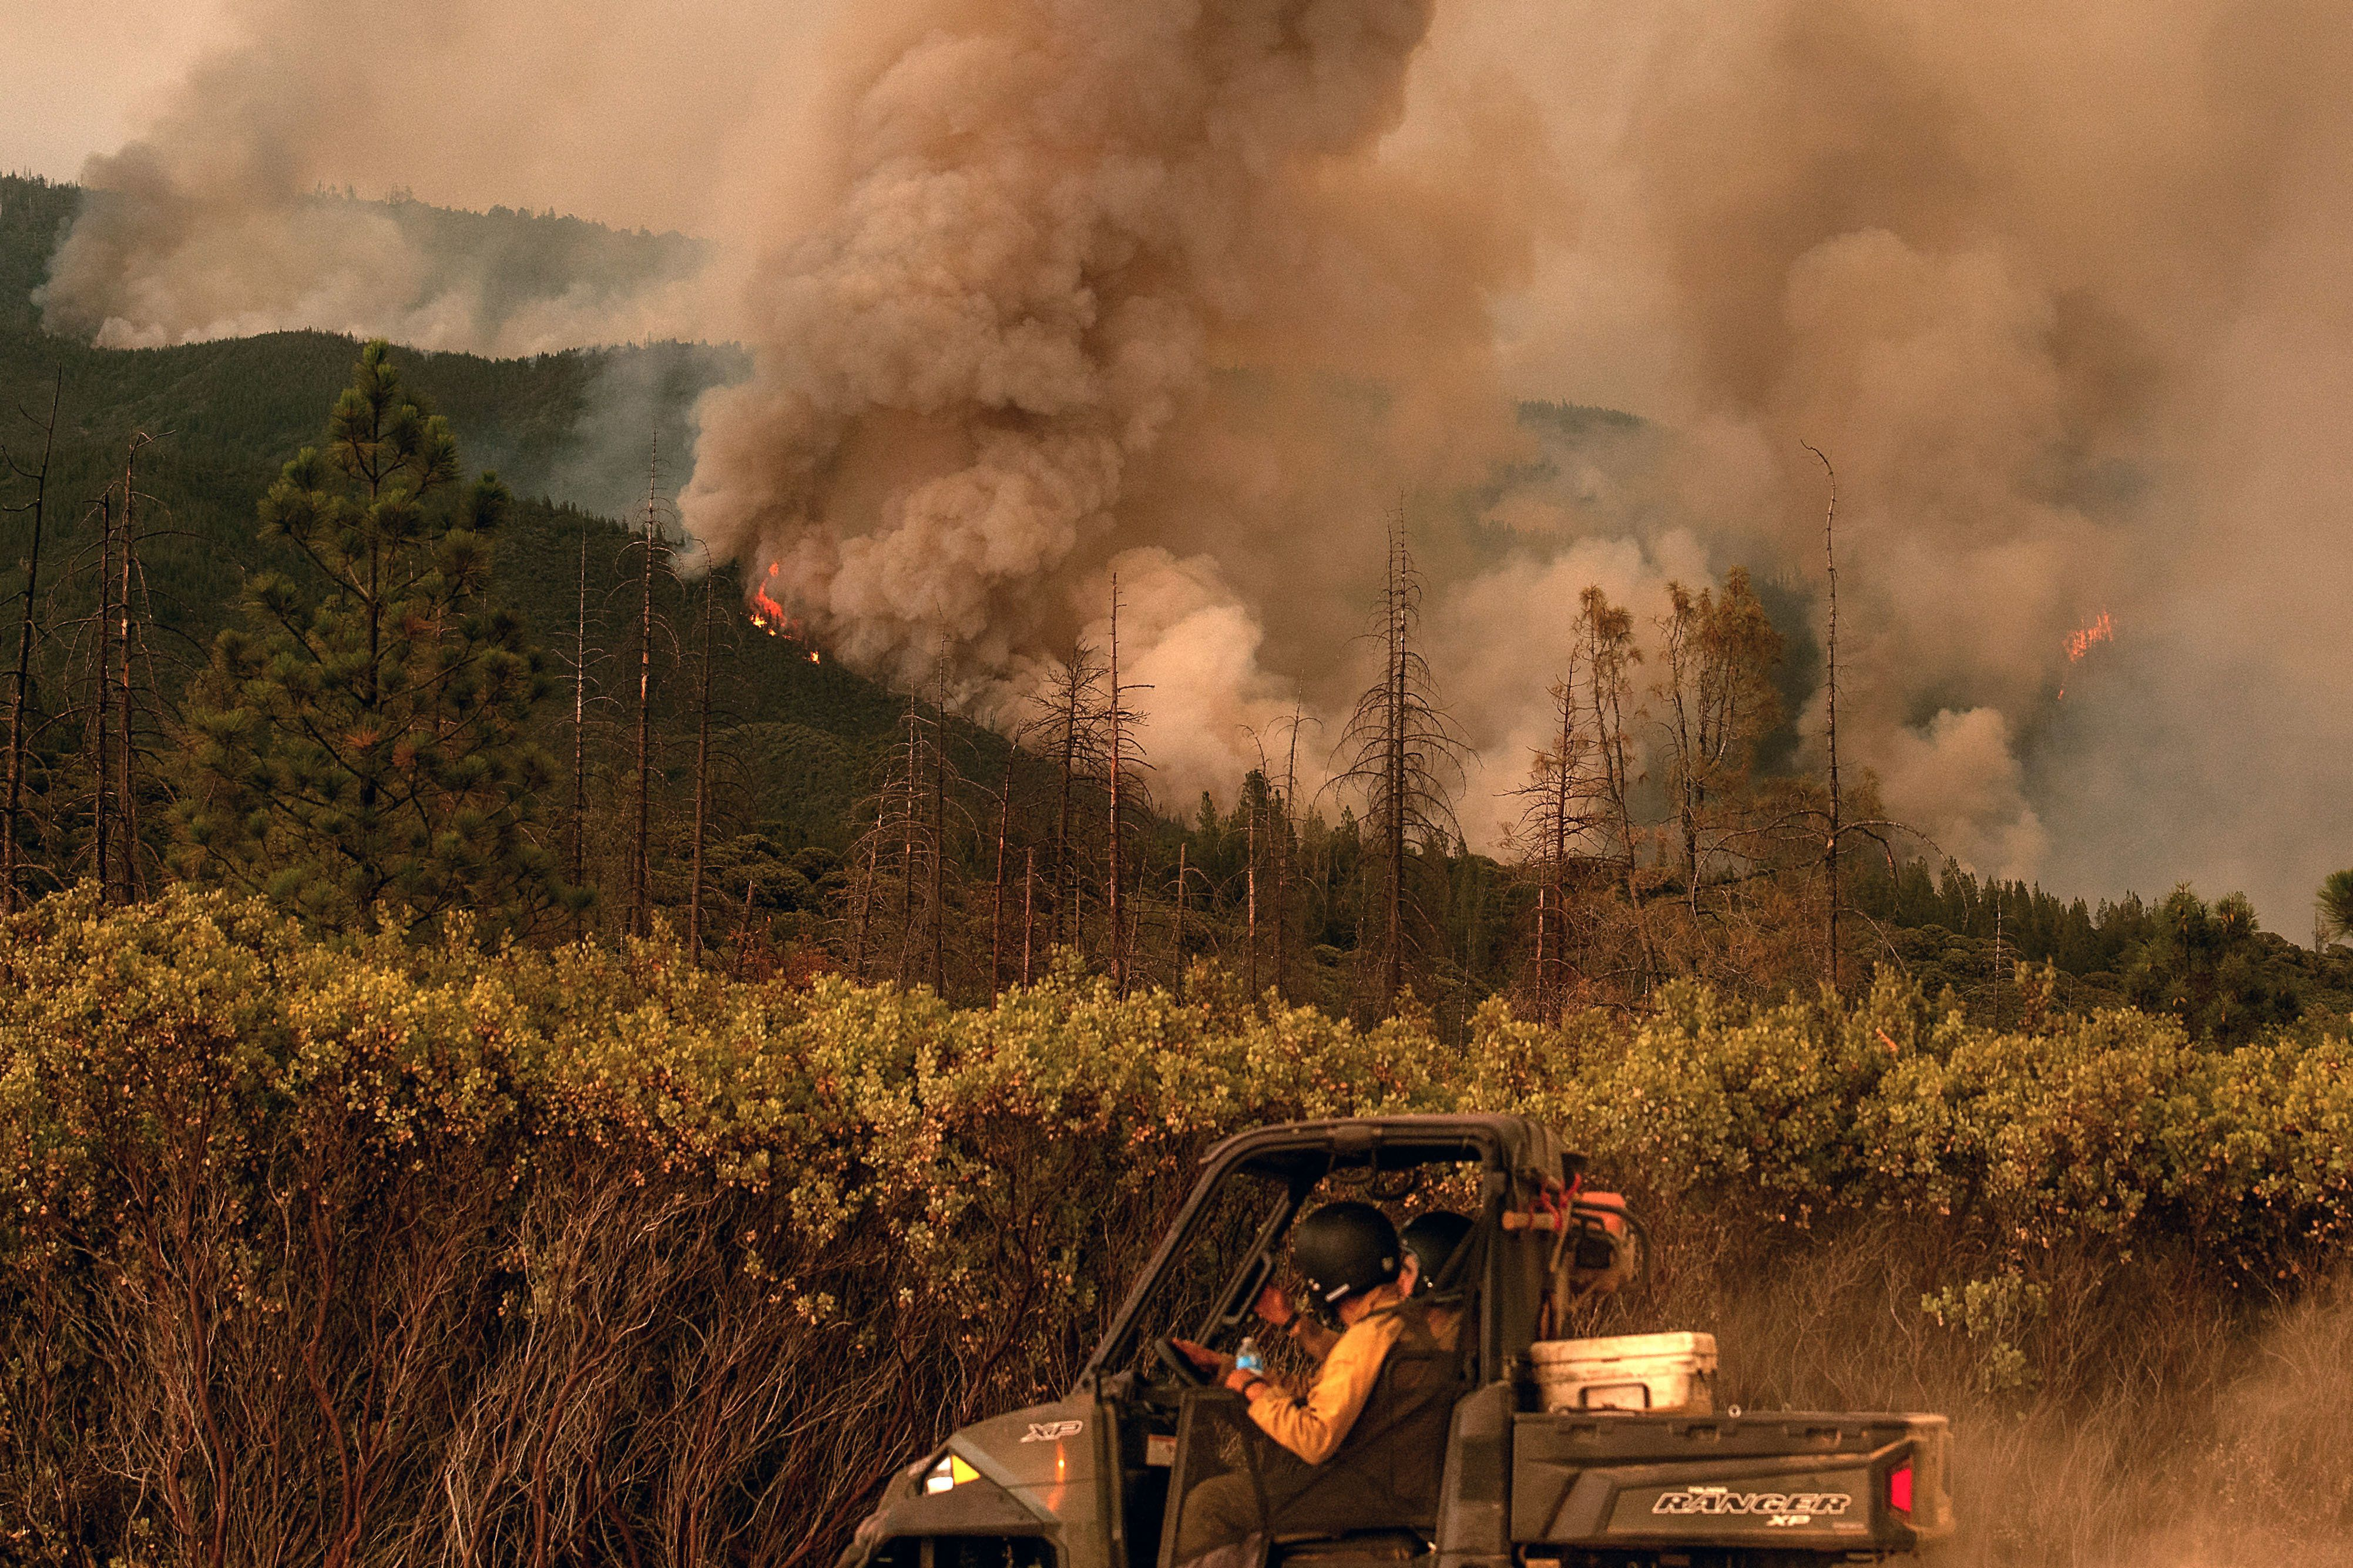 Firefighters drive along a fire break as the Ferguson fire burns in Stanislaus National Forest near Yosemite National Park on